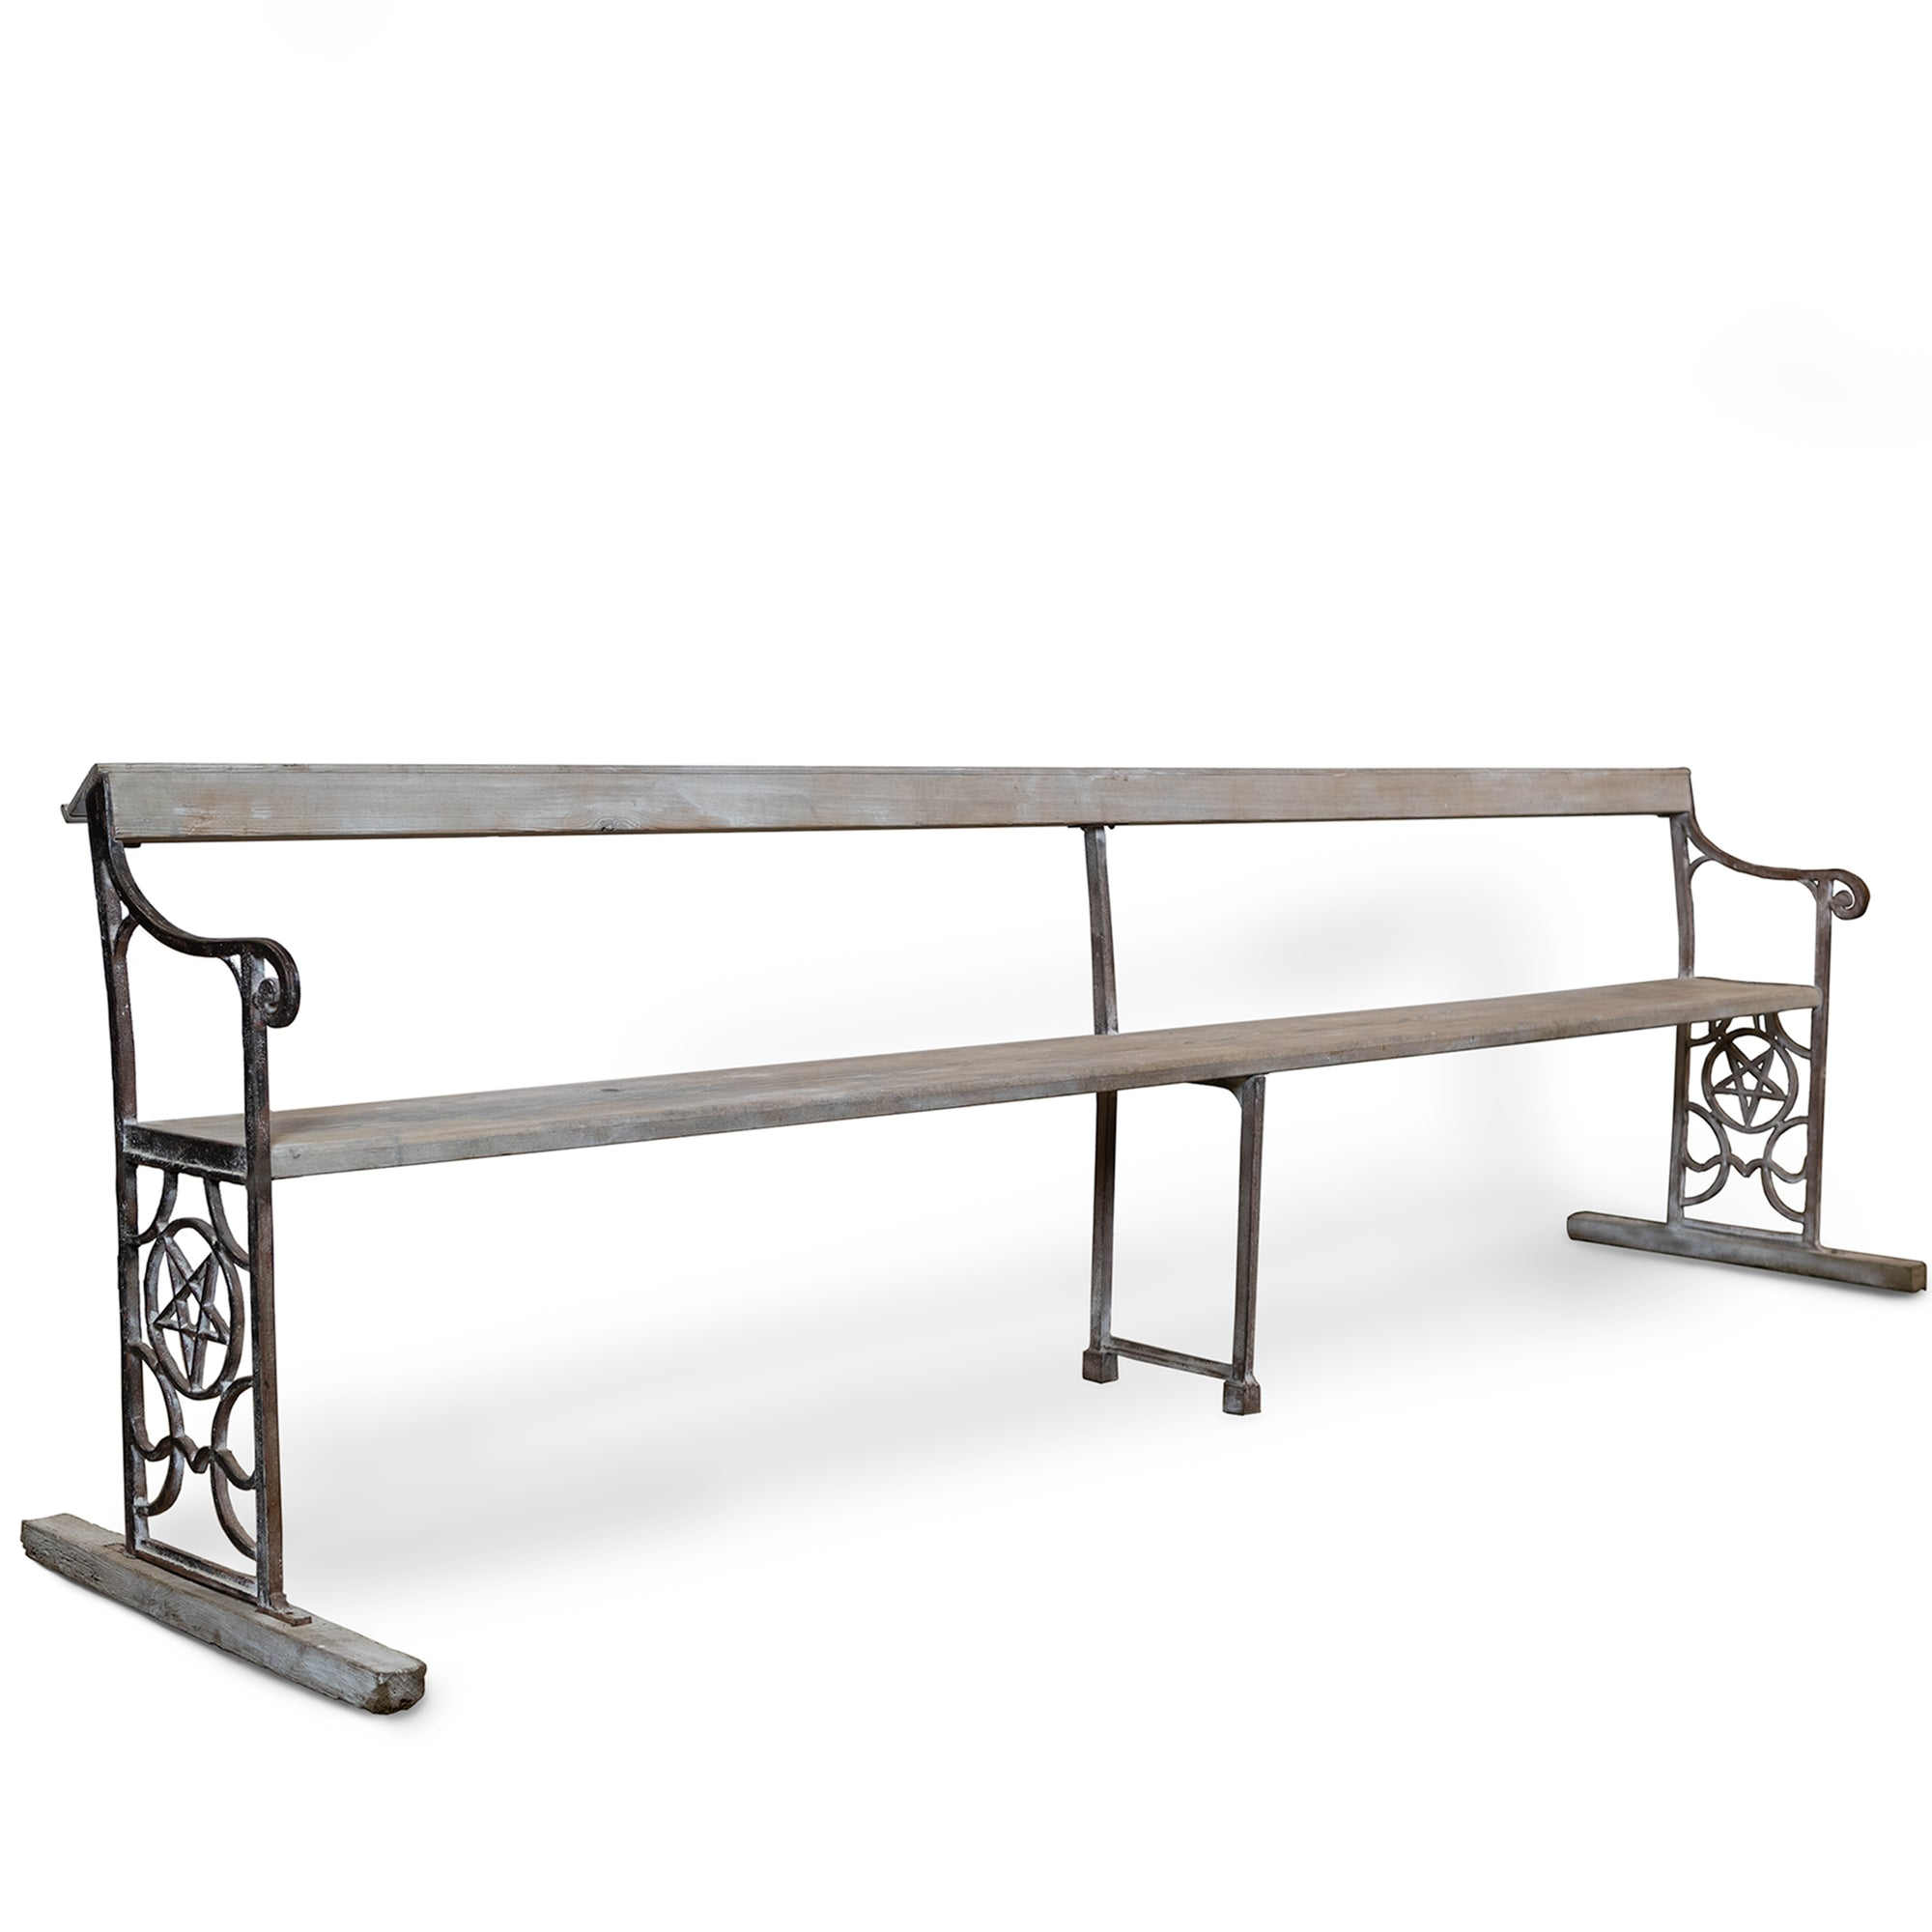 Reclaimed Cast Iron Long Bench with Pentagram | The Architectural Forum